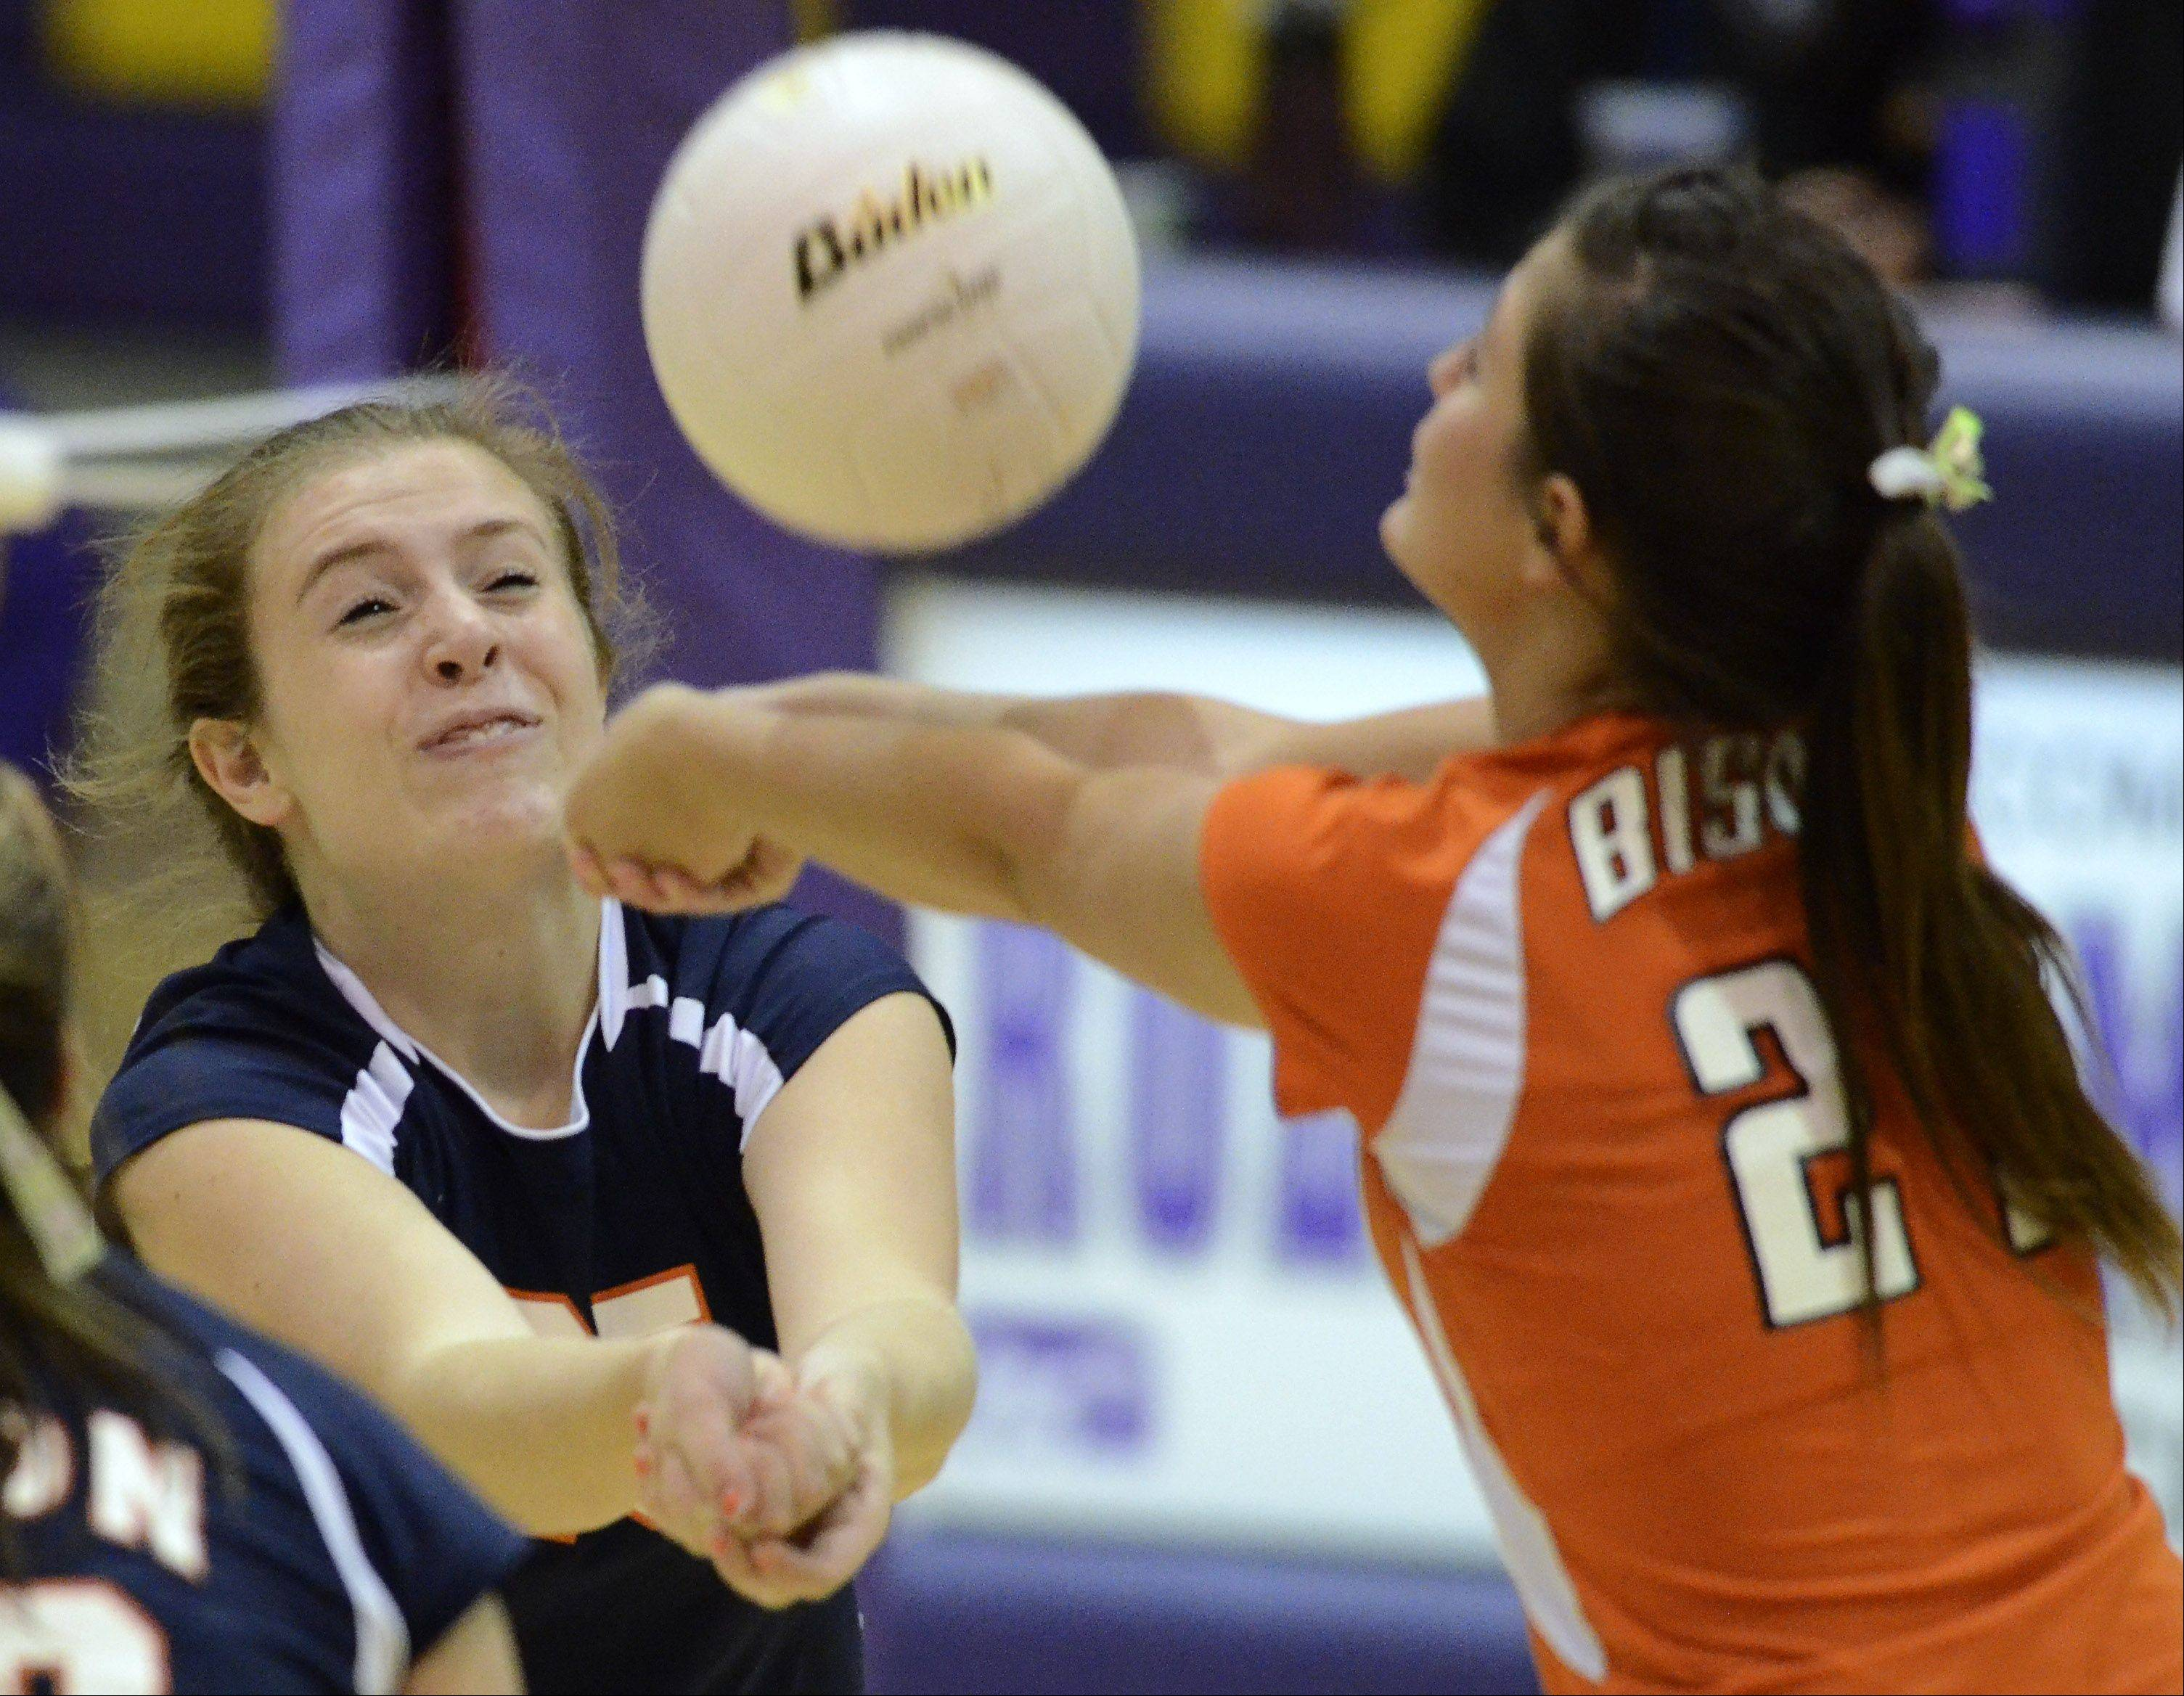 Buffalo Grove's Alyssa Mills, left, and Lea Masciopinto converge upon one another as they run for a dig during Thursday's game against Rolling Meadows.